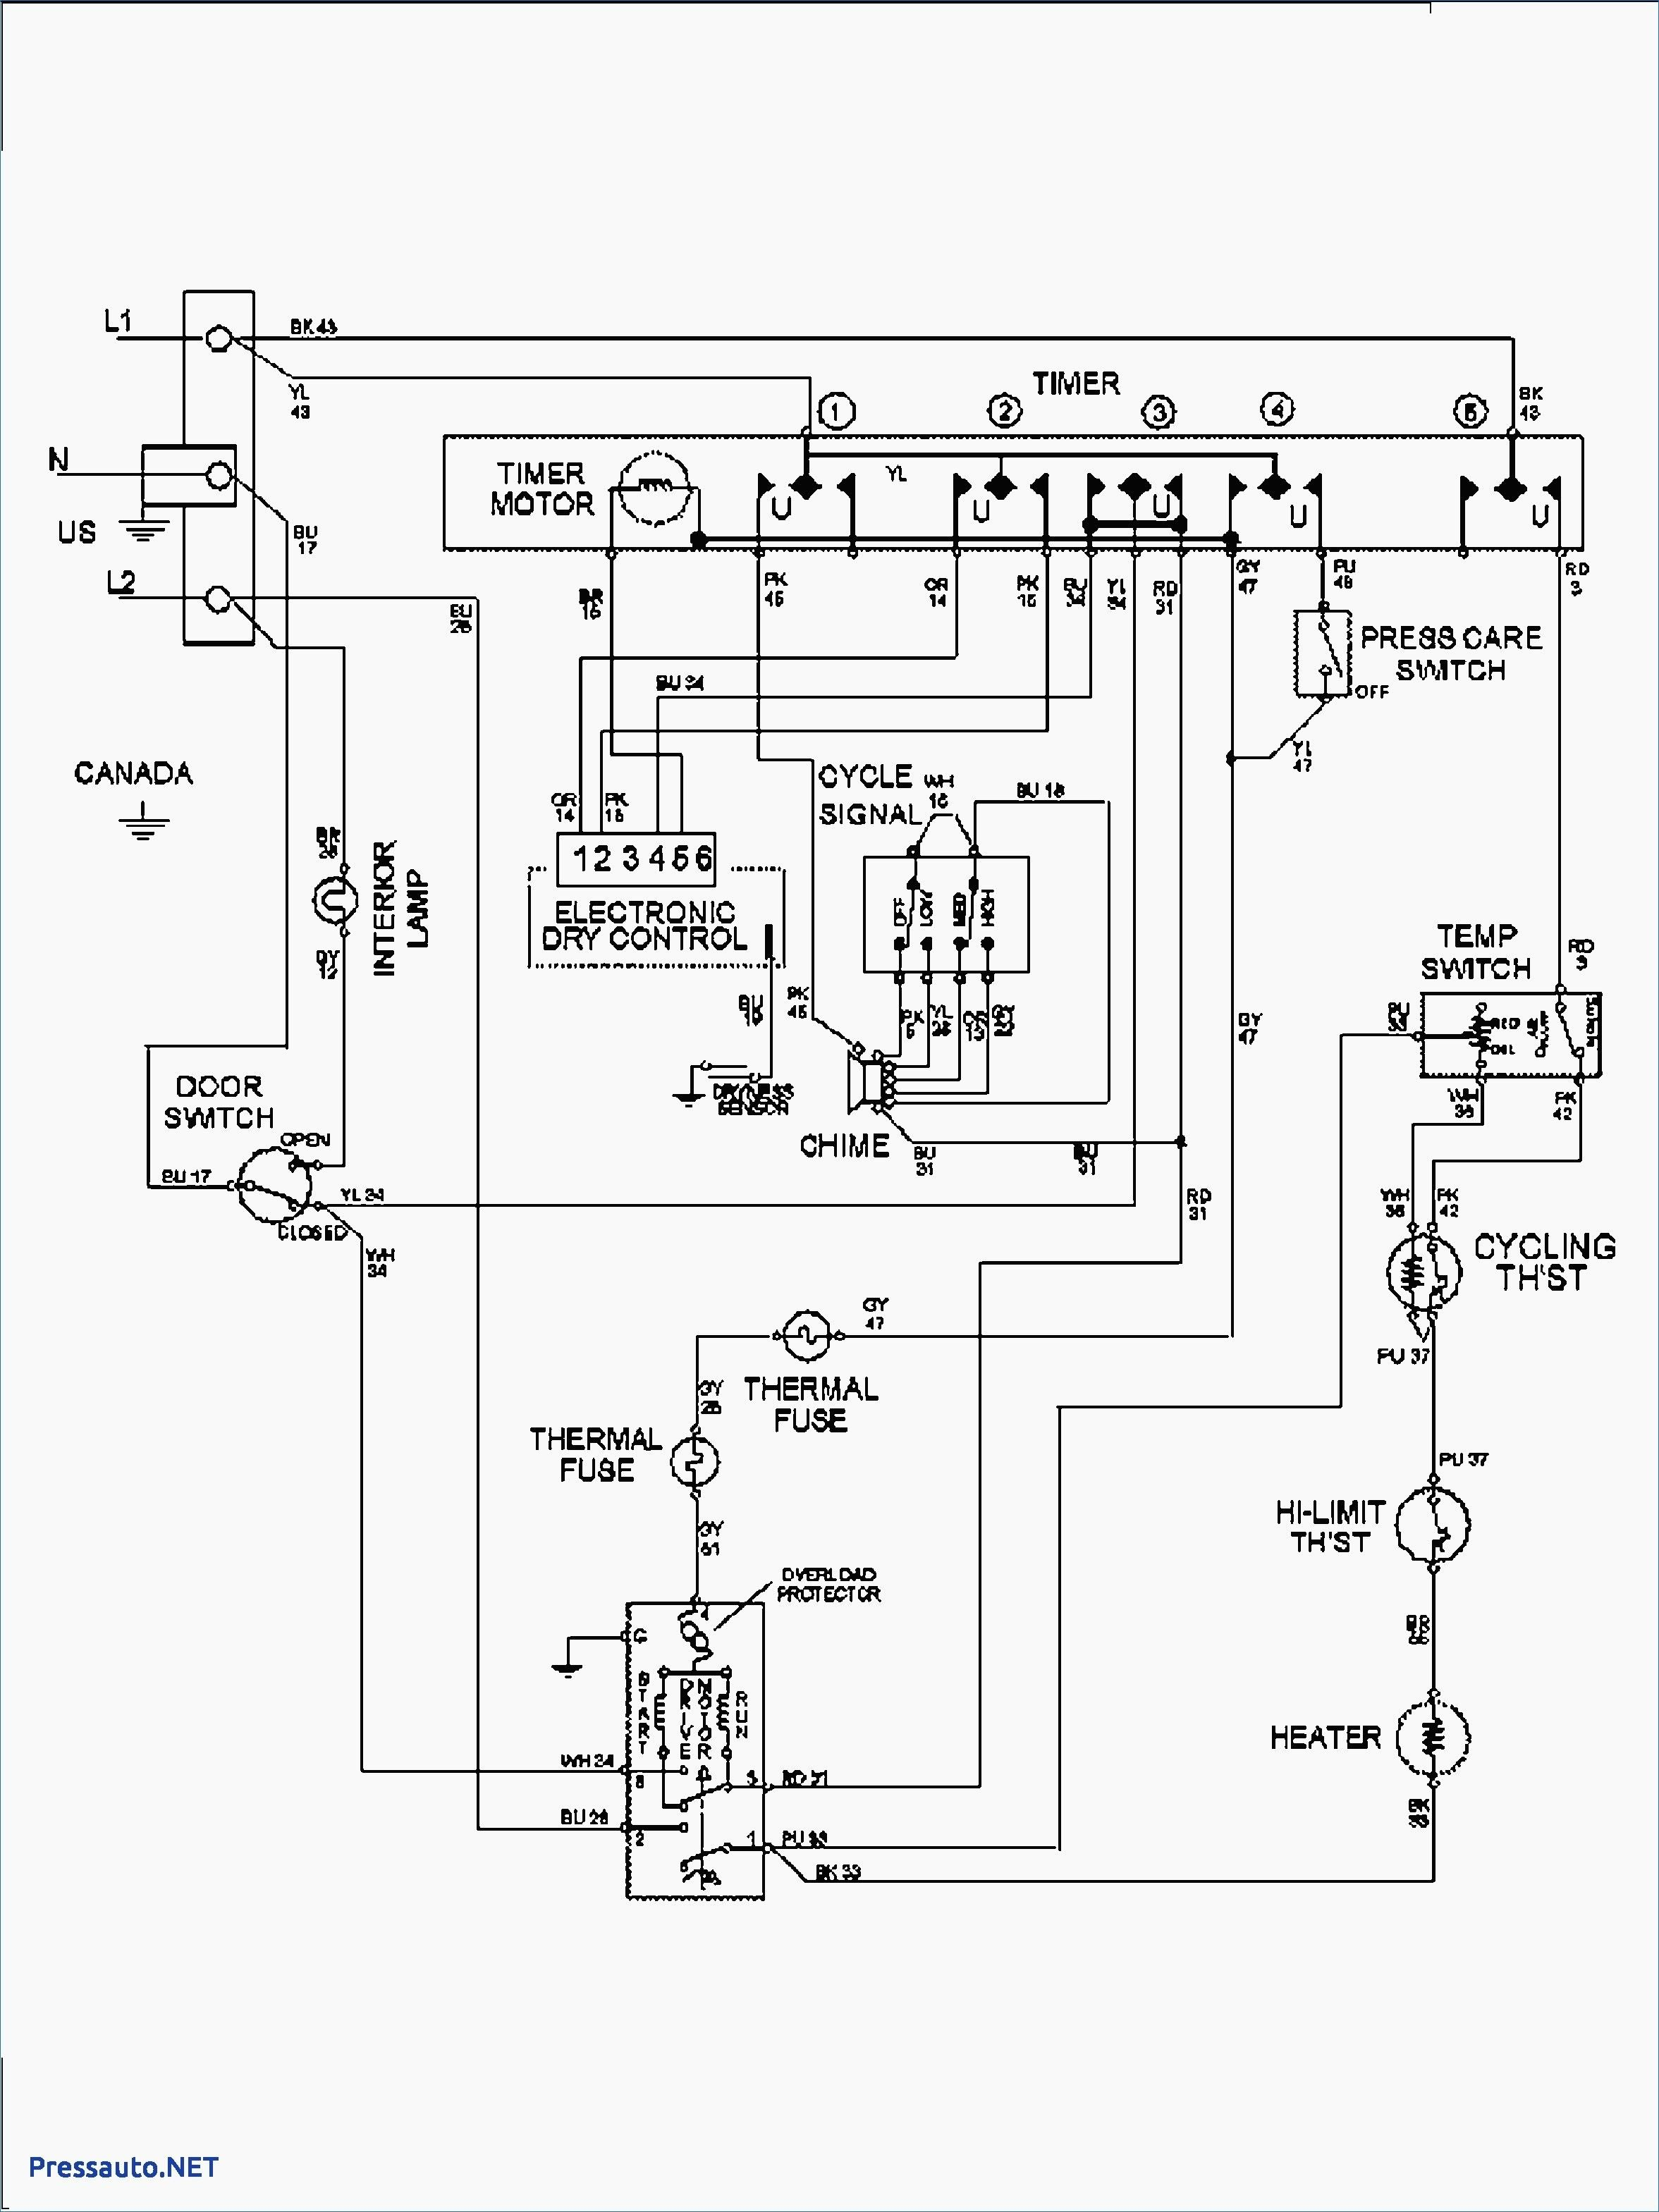 Dryer Door Switch Wiring Diagram